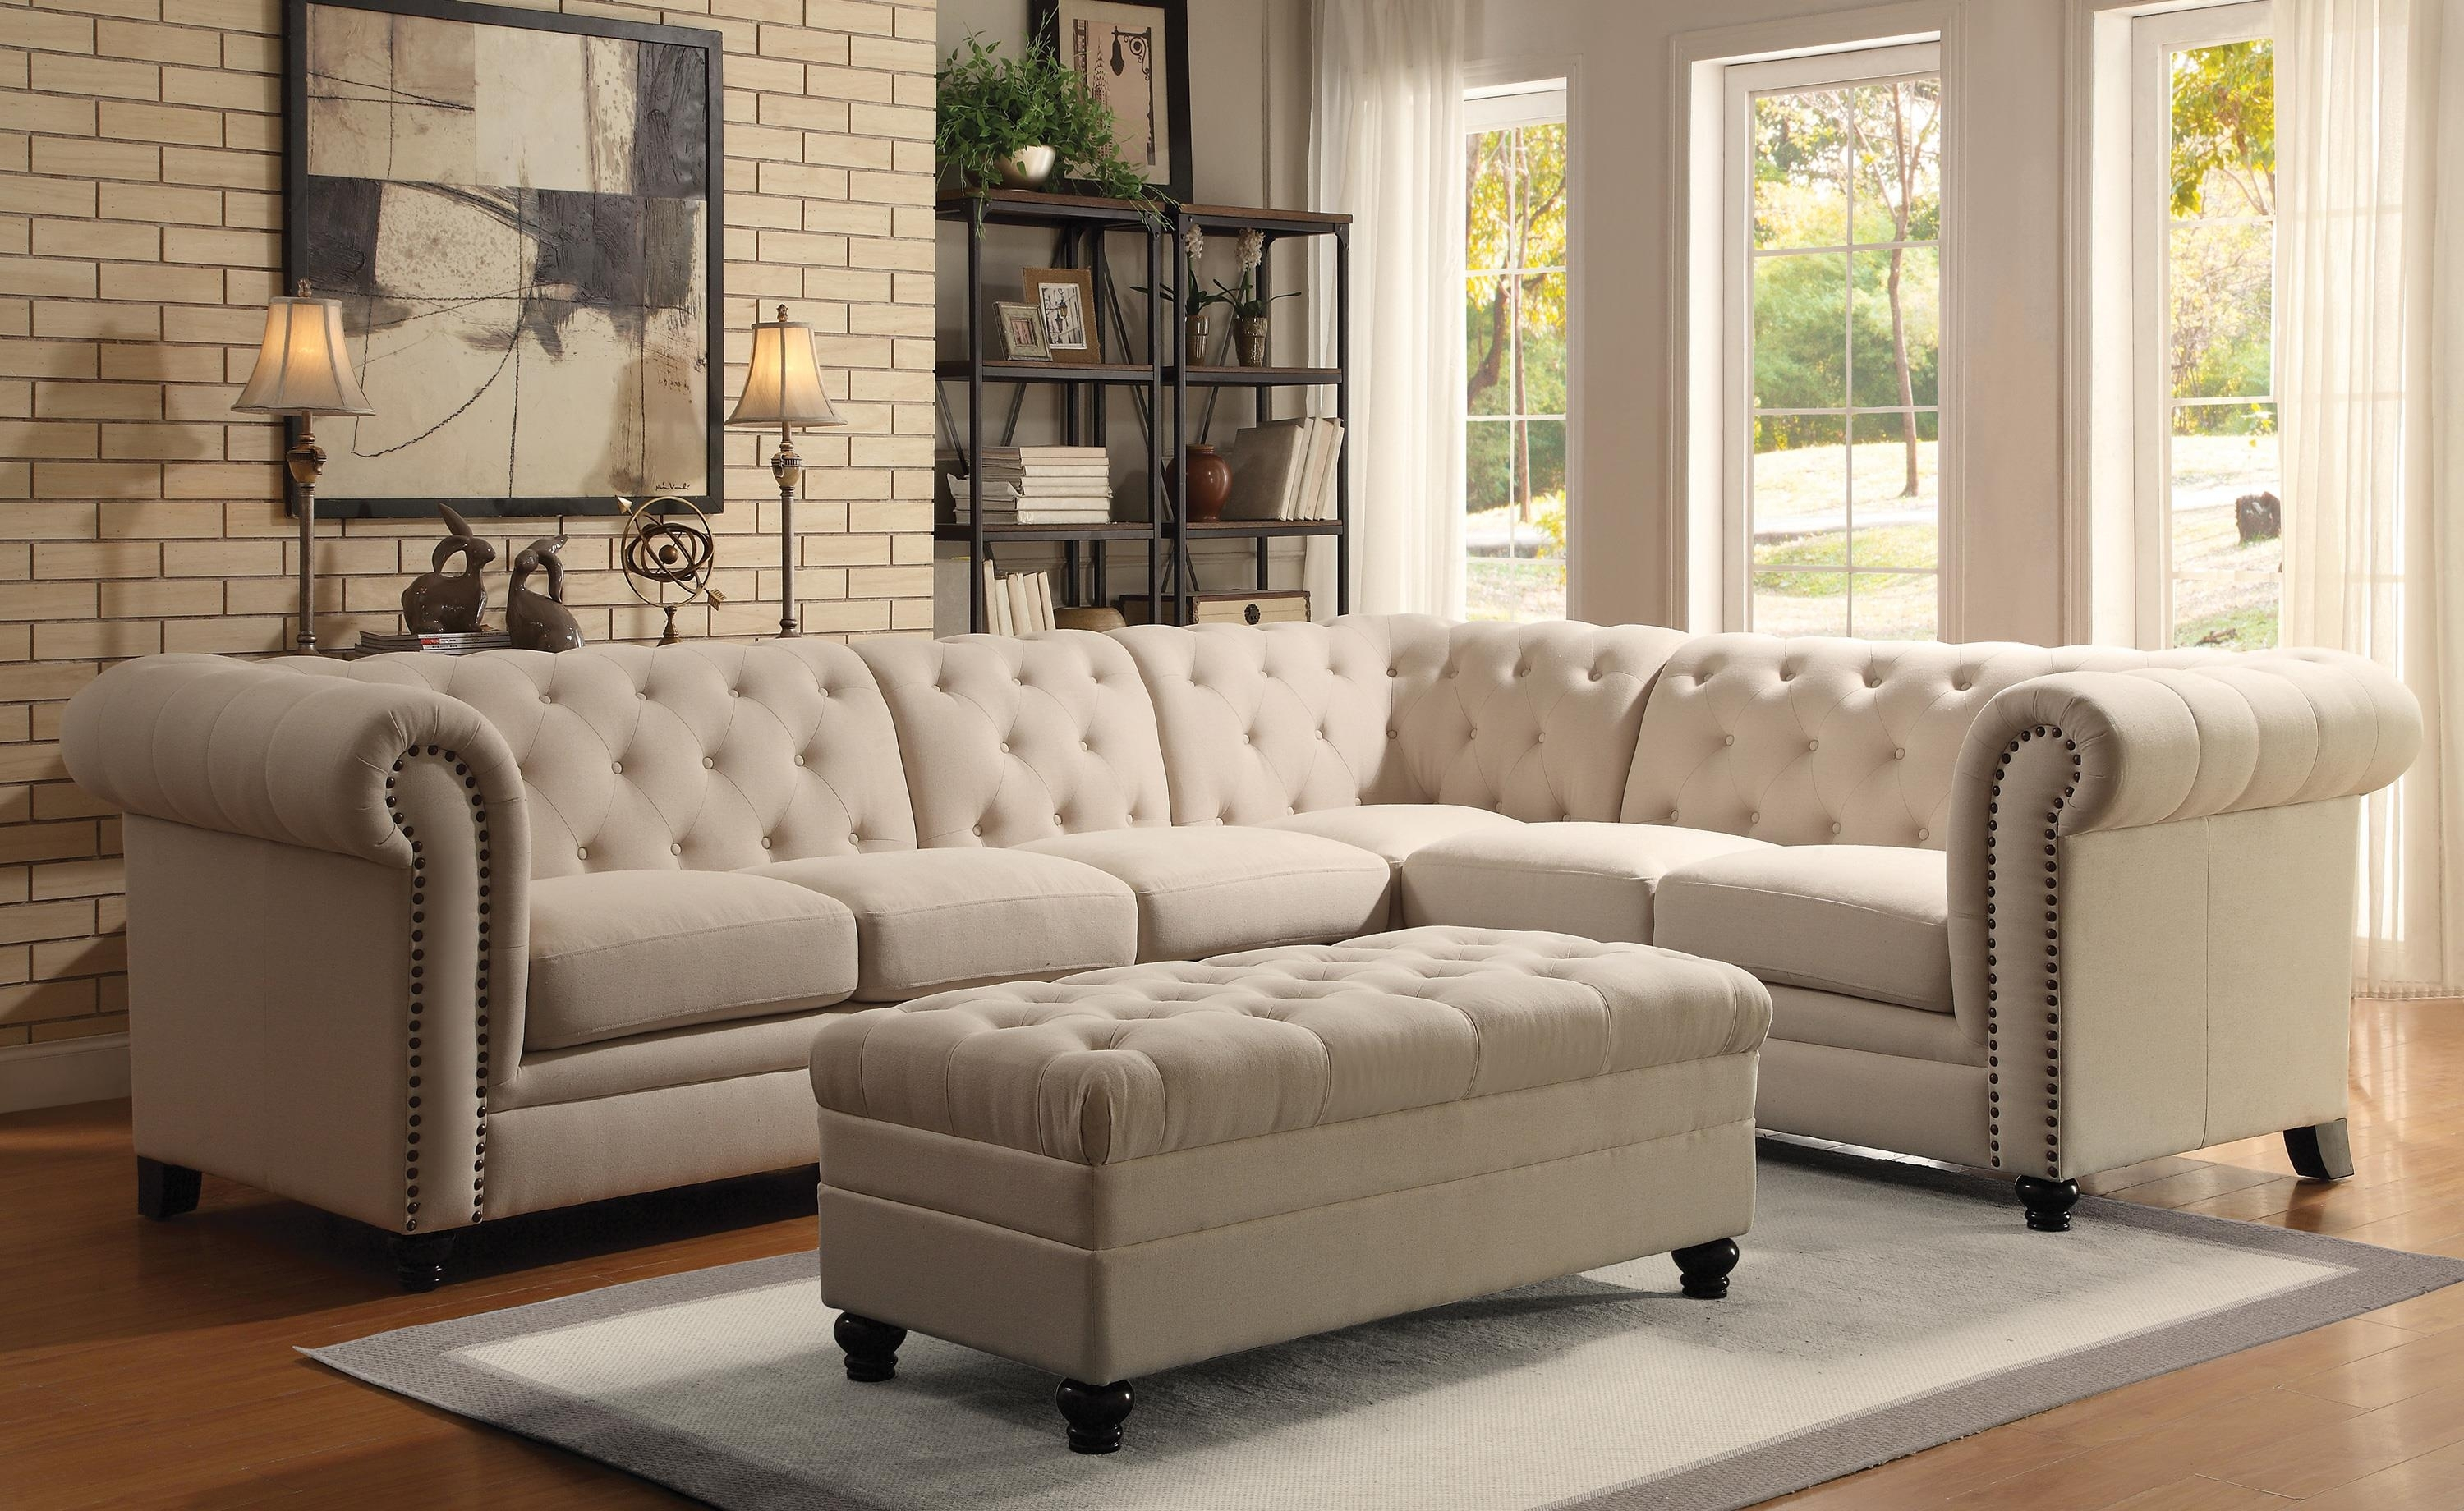 Sofa : Trendy Tufted Sofa Sectional Light Brown Fabric Ashley Pertaining To Ashley Tufted Sofas (View 3 of 10)